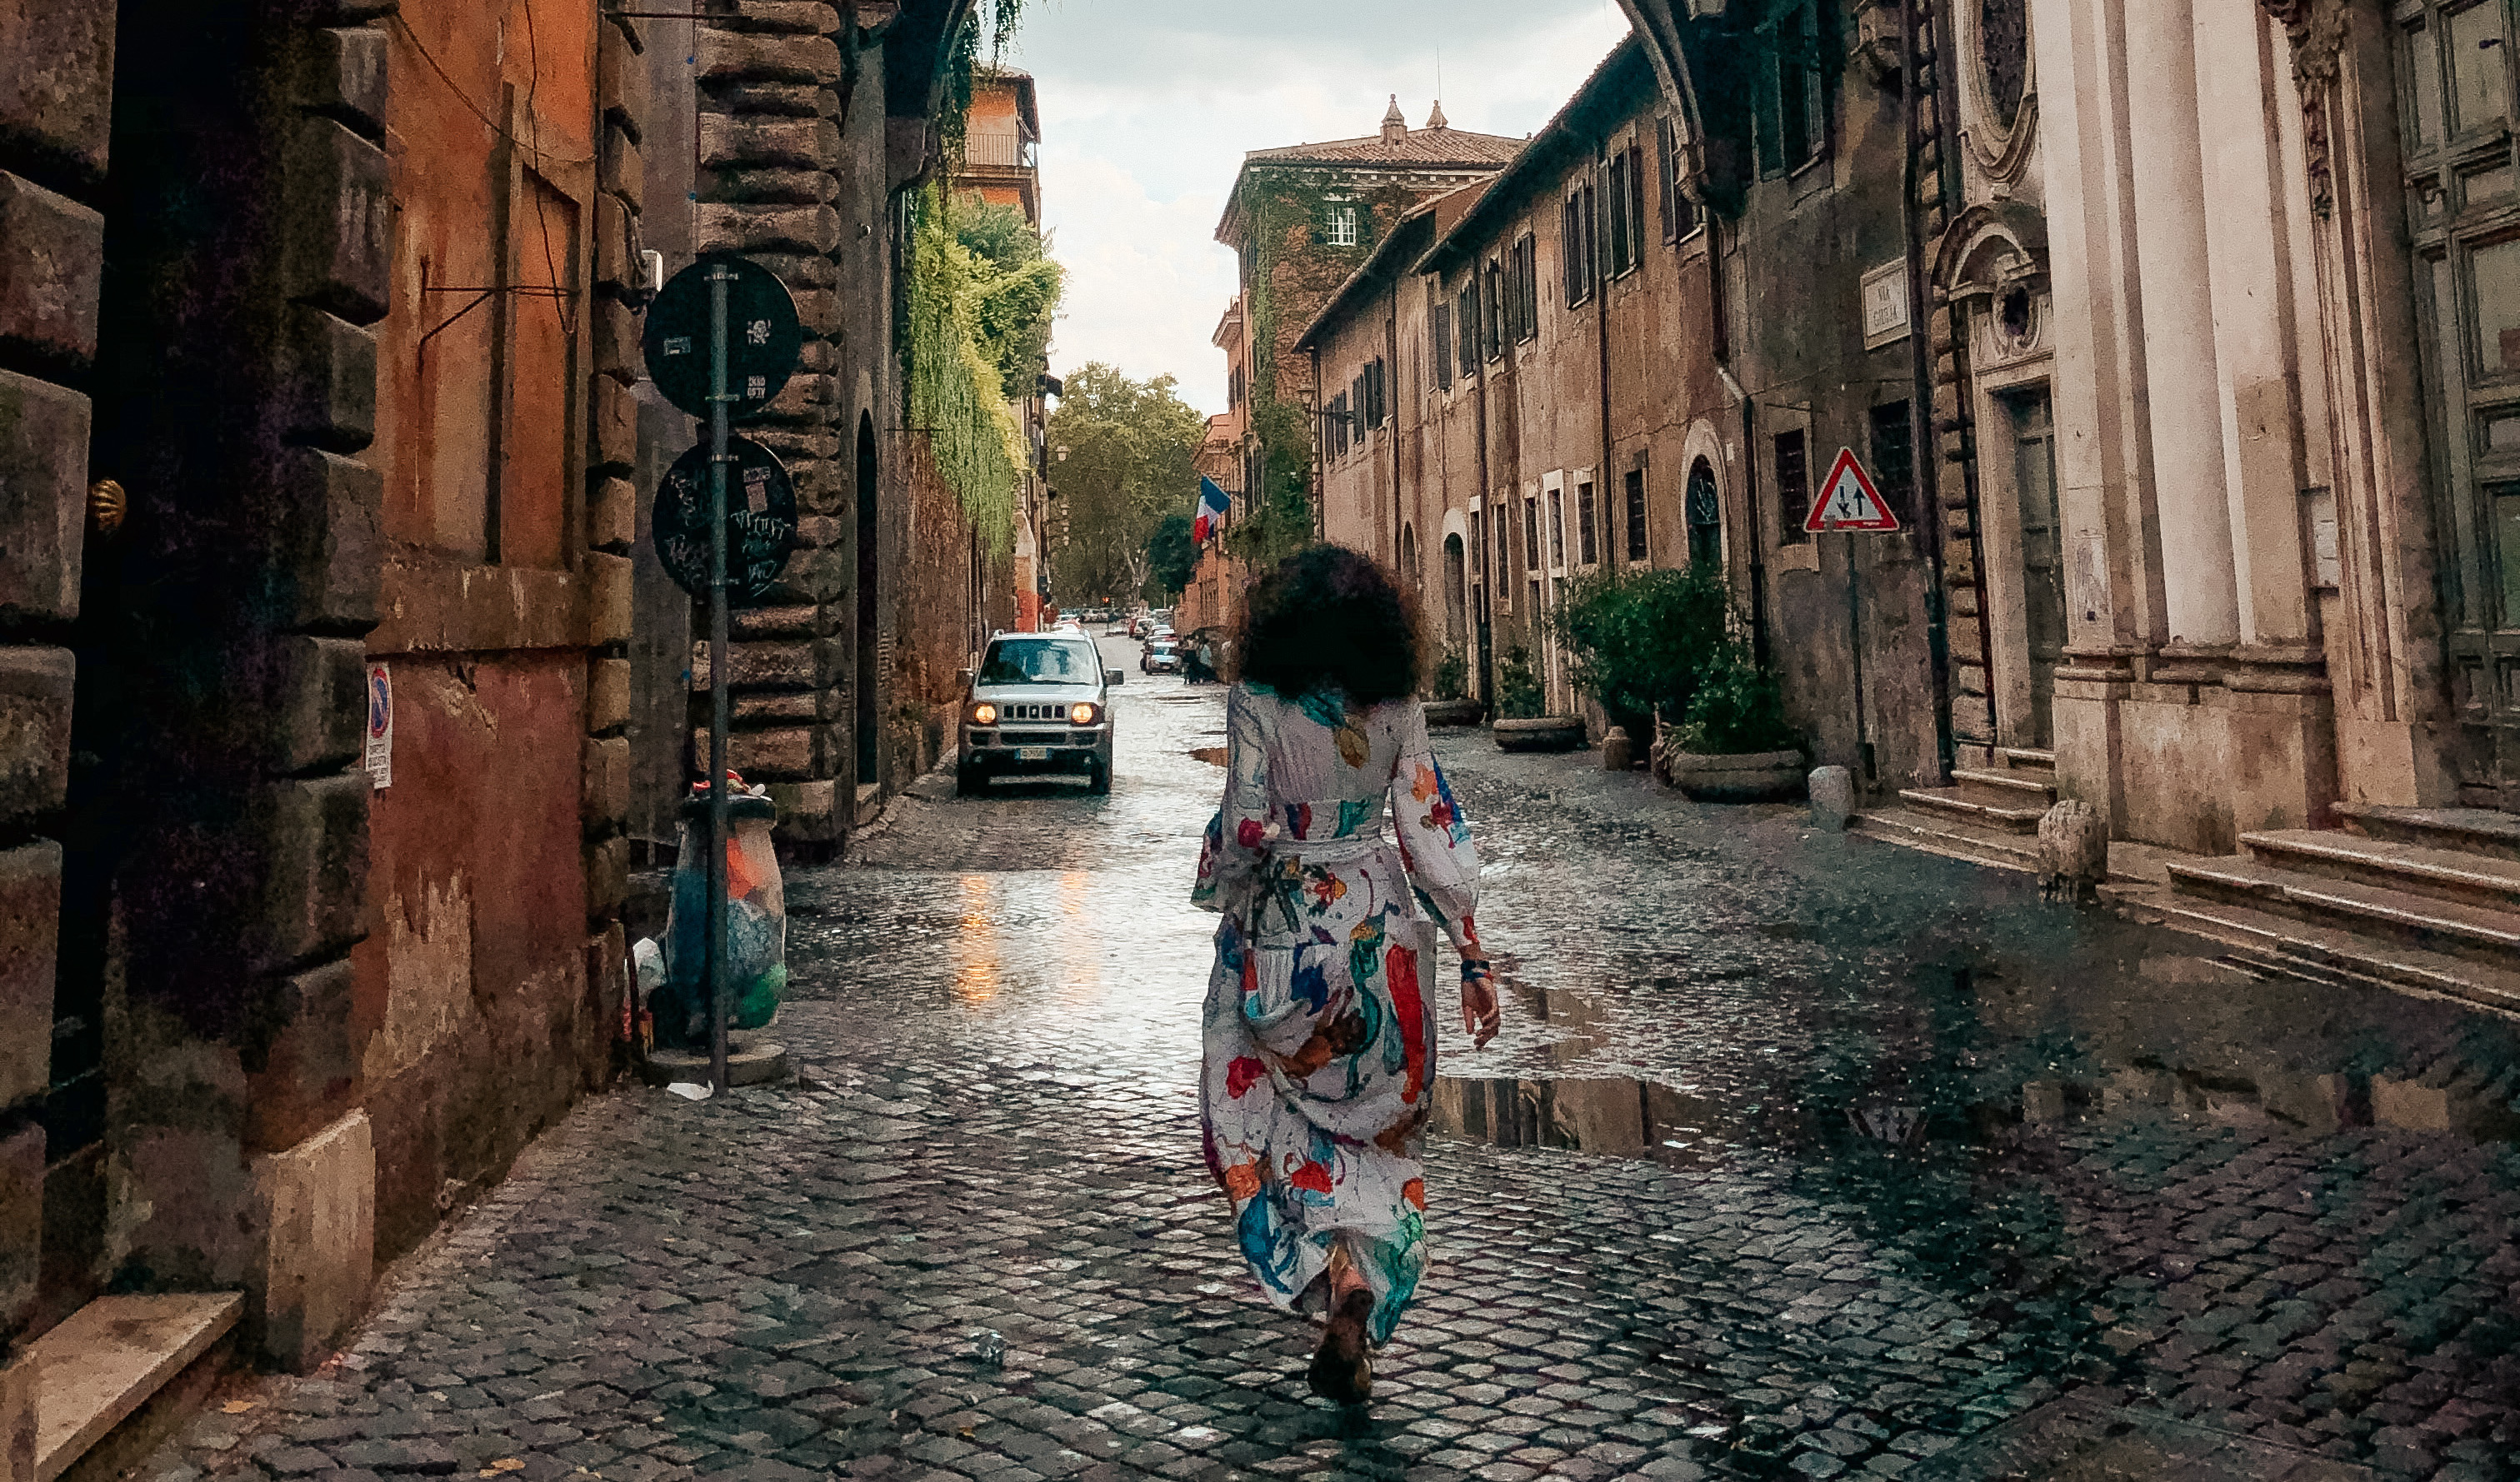 Stella walking down a raining street in Rome